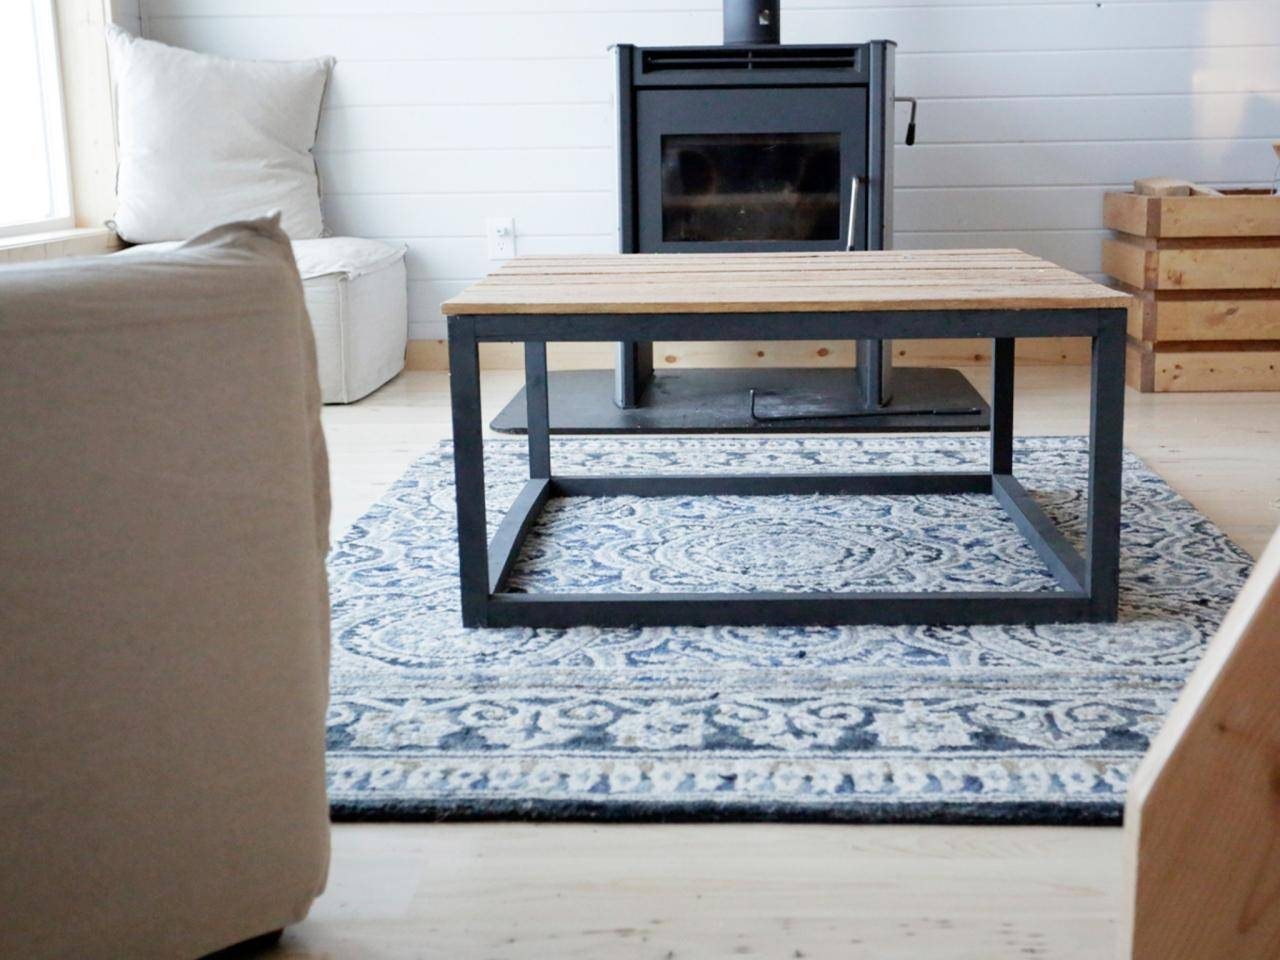 How To Build A Modern Industrial Coffee Table | How-Tos | Diy with Range Coffee Tables (Image 19 of 30)